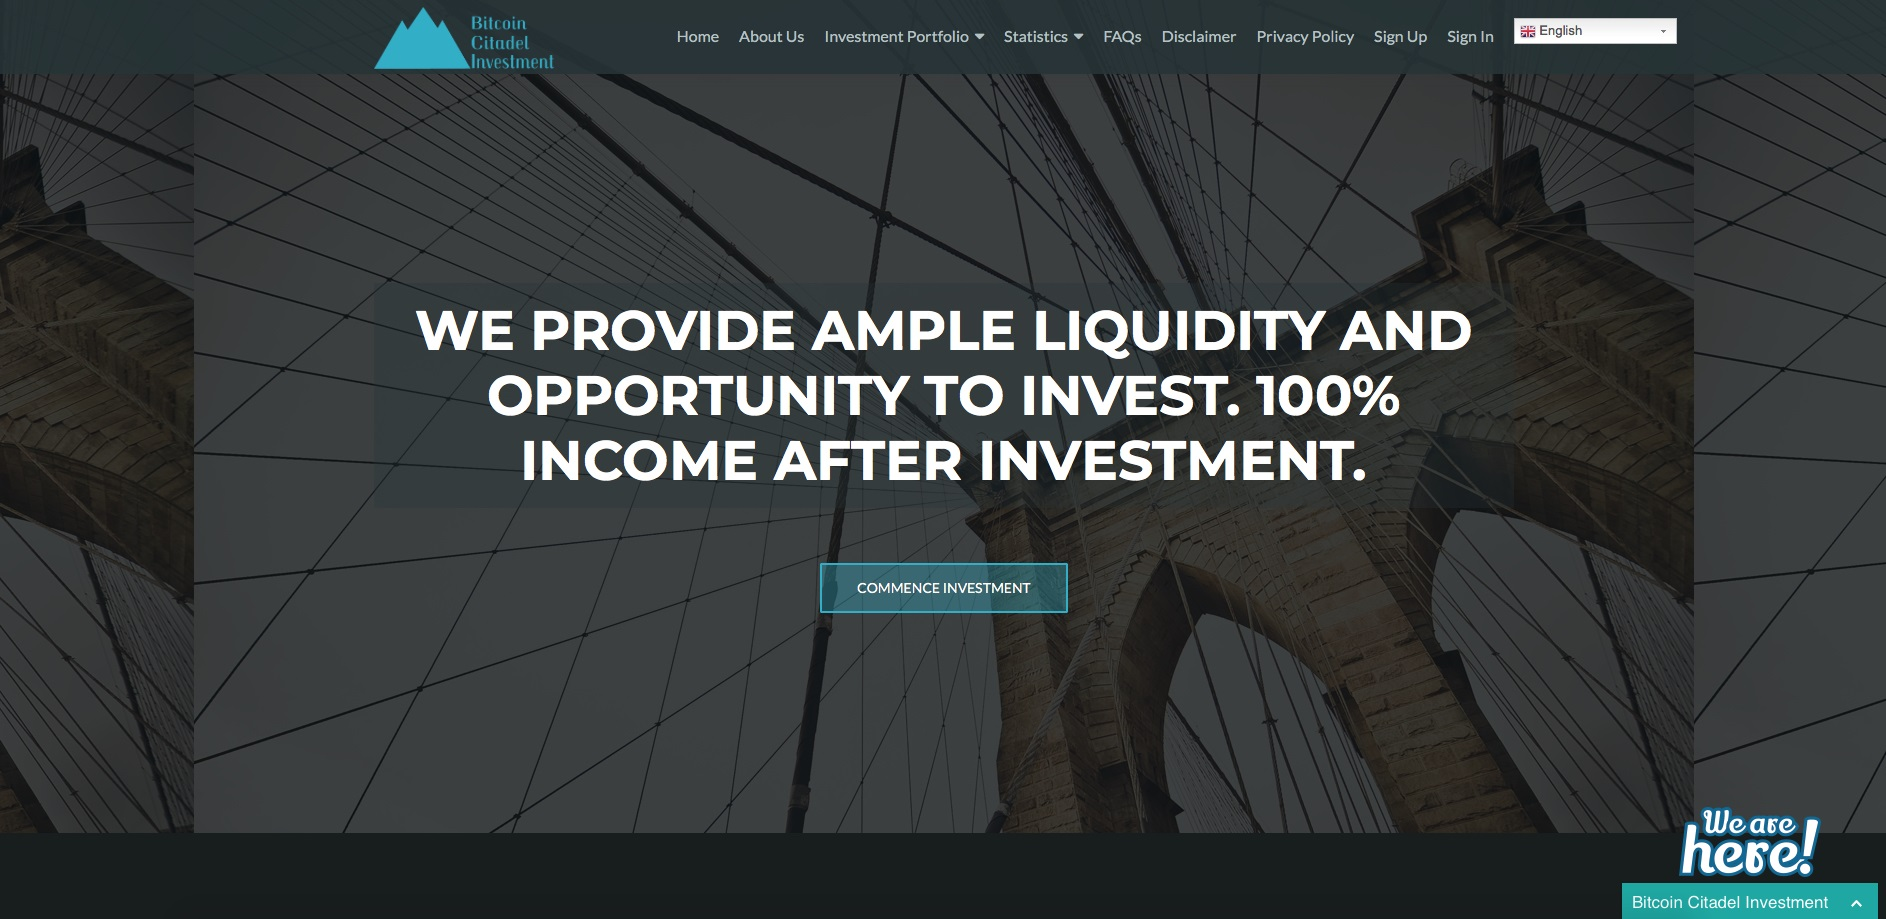 bitcoincitadelinvestment.com - Bitcoin Citadel Investment